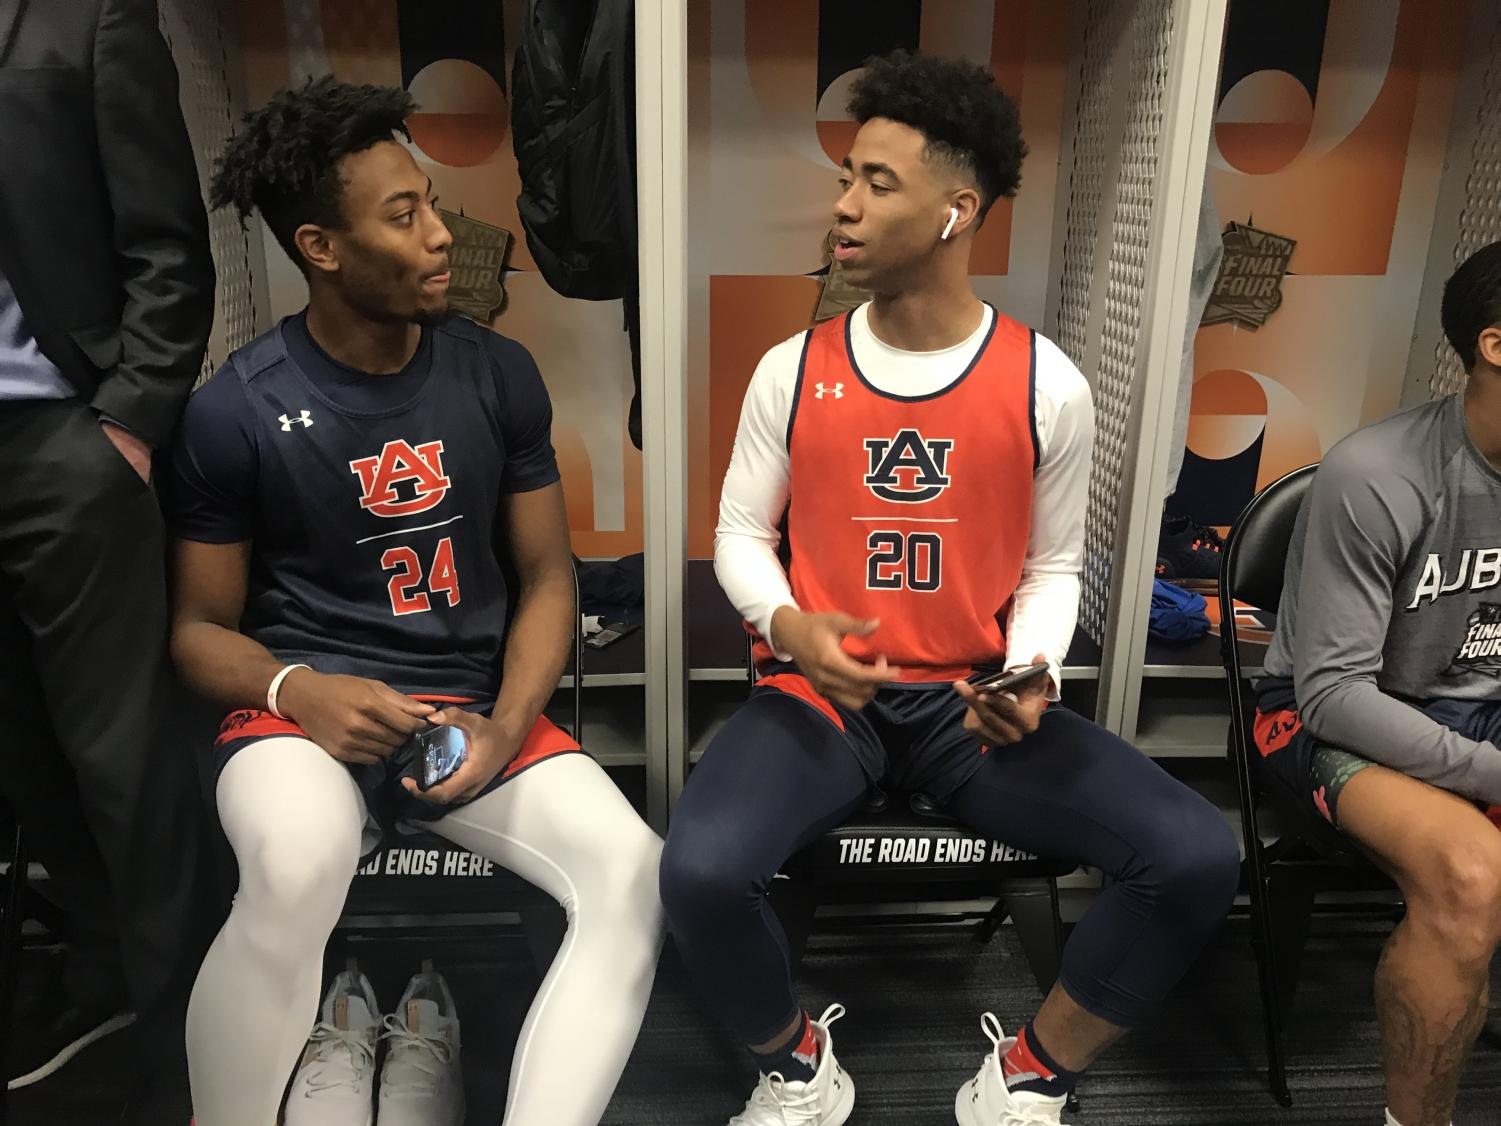 Junior forward Anfernee McLemore and freshman forward Myles Parker talk in the locker room before taking the court for their final practice the day prior to Auburn's first appearance in the Final Four.